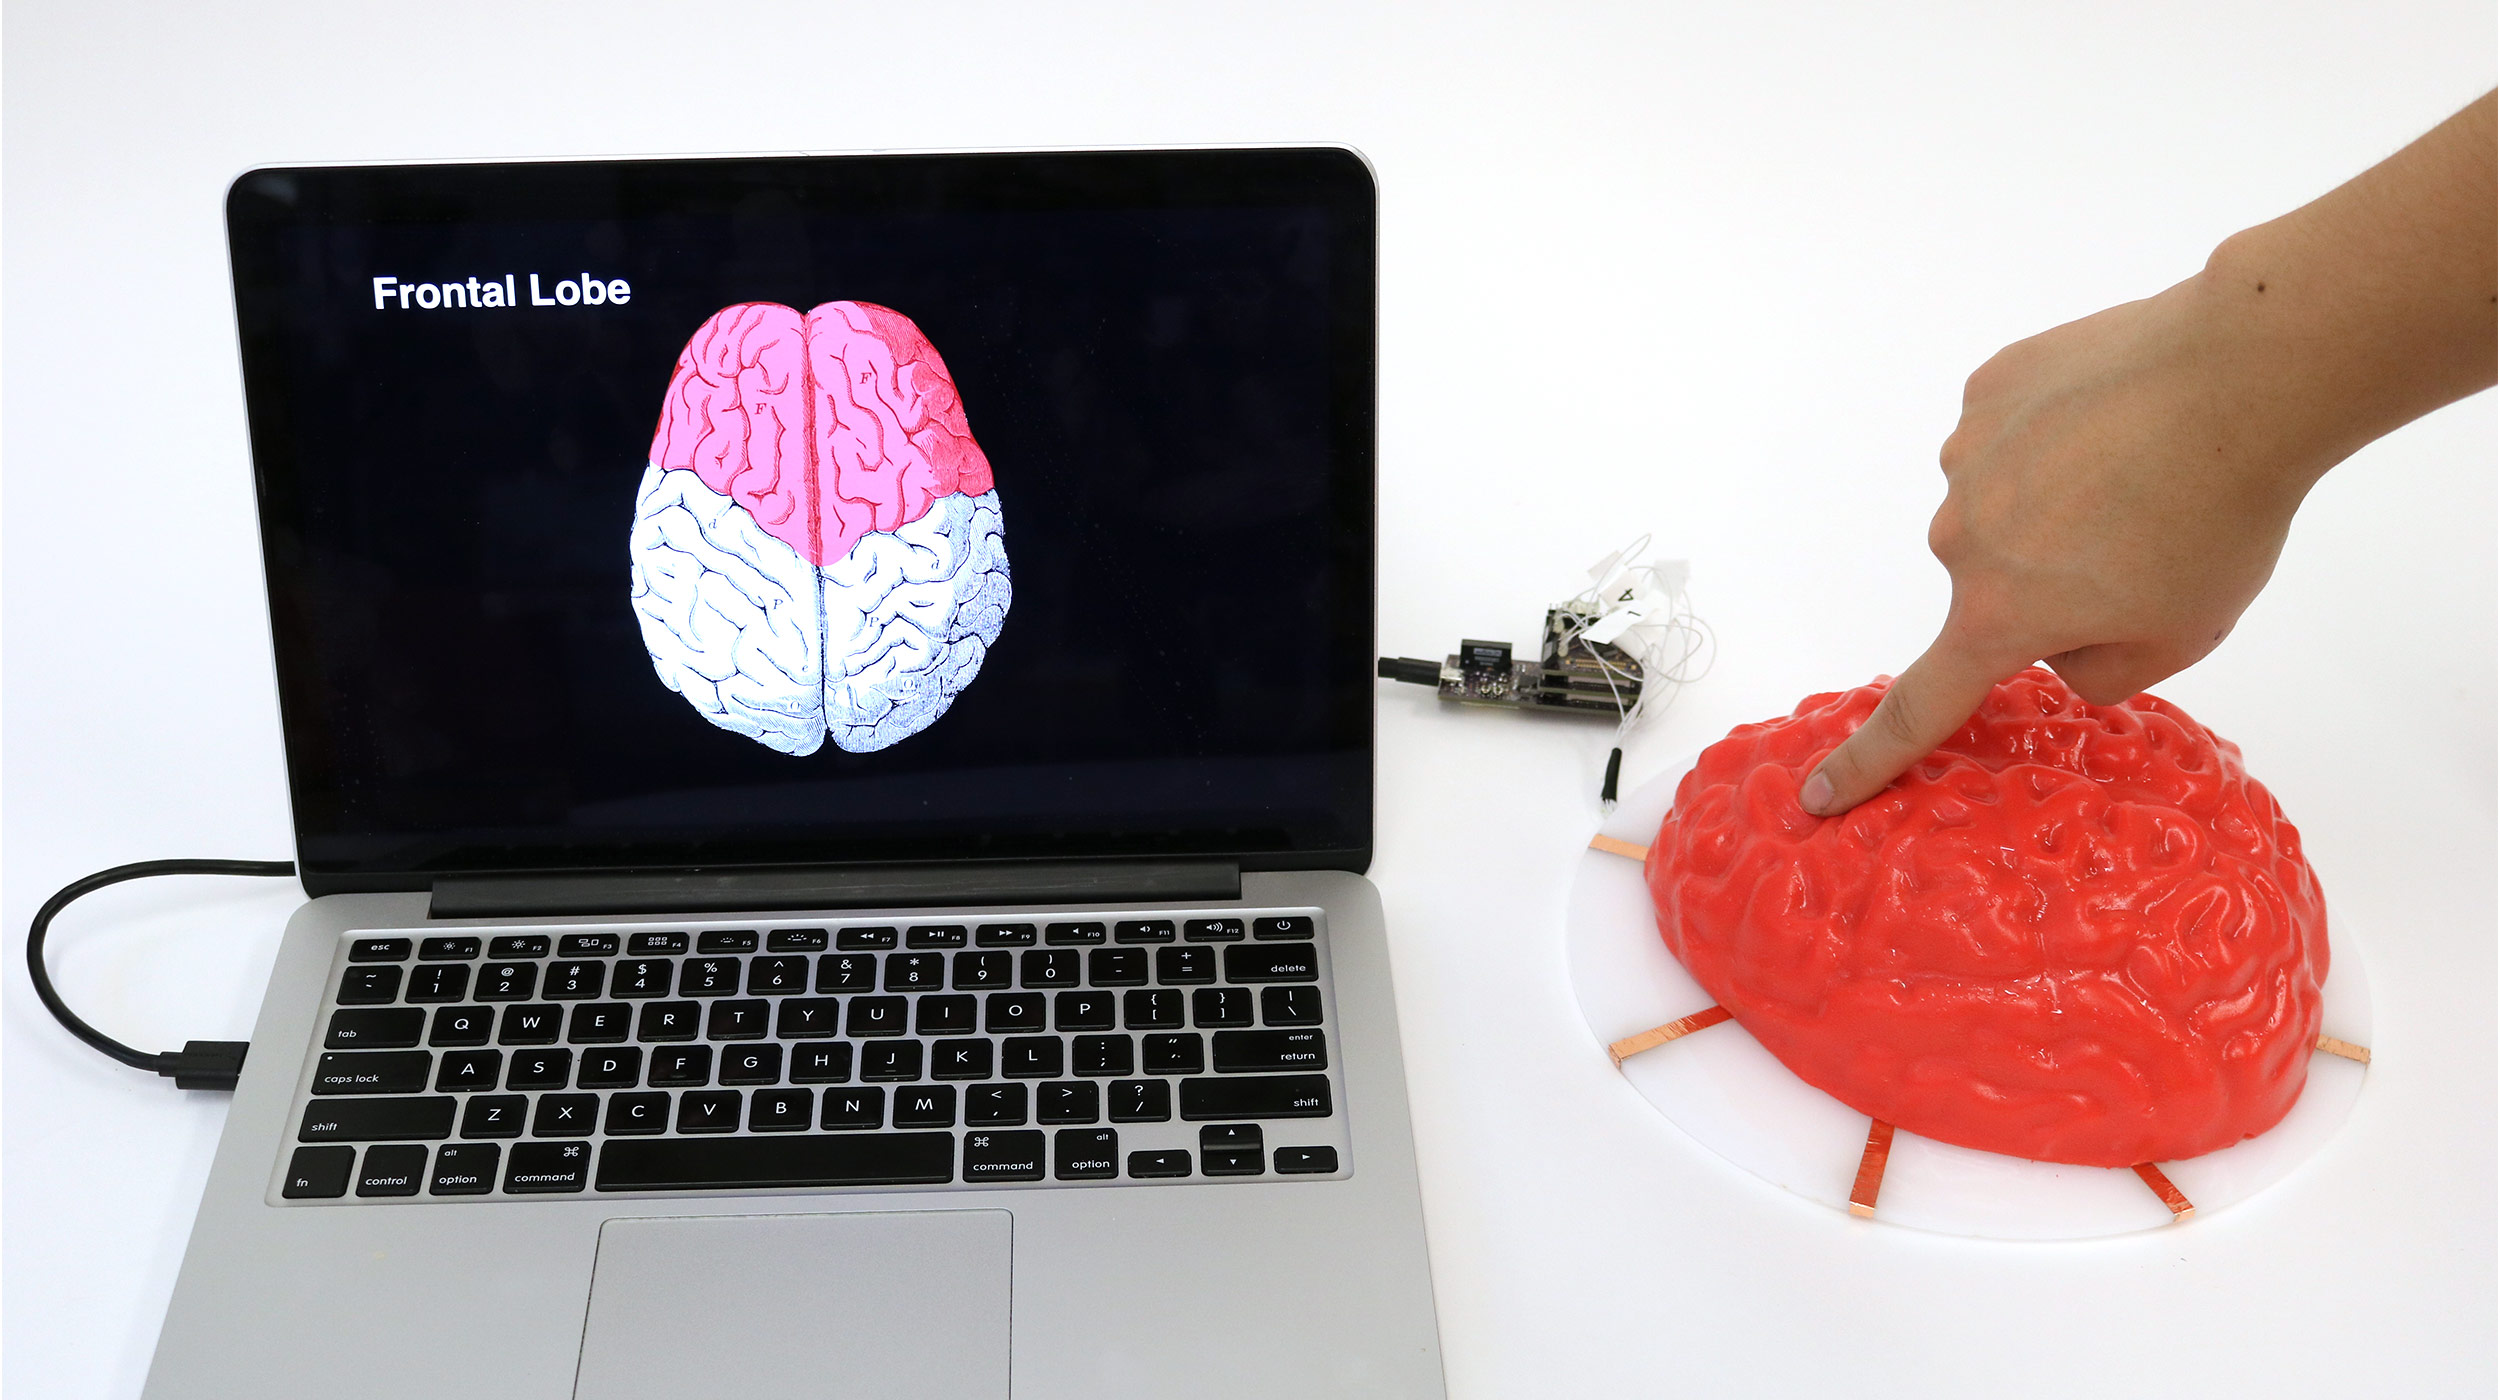 Electrick can turn all kinds of objects, like this molded Jell-O brain, into touch pads.